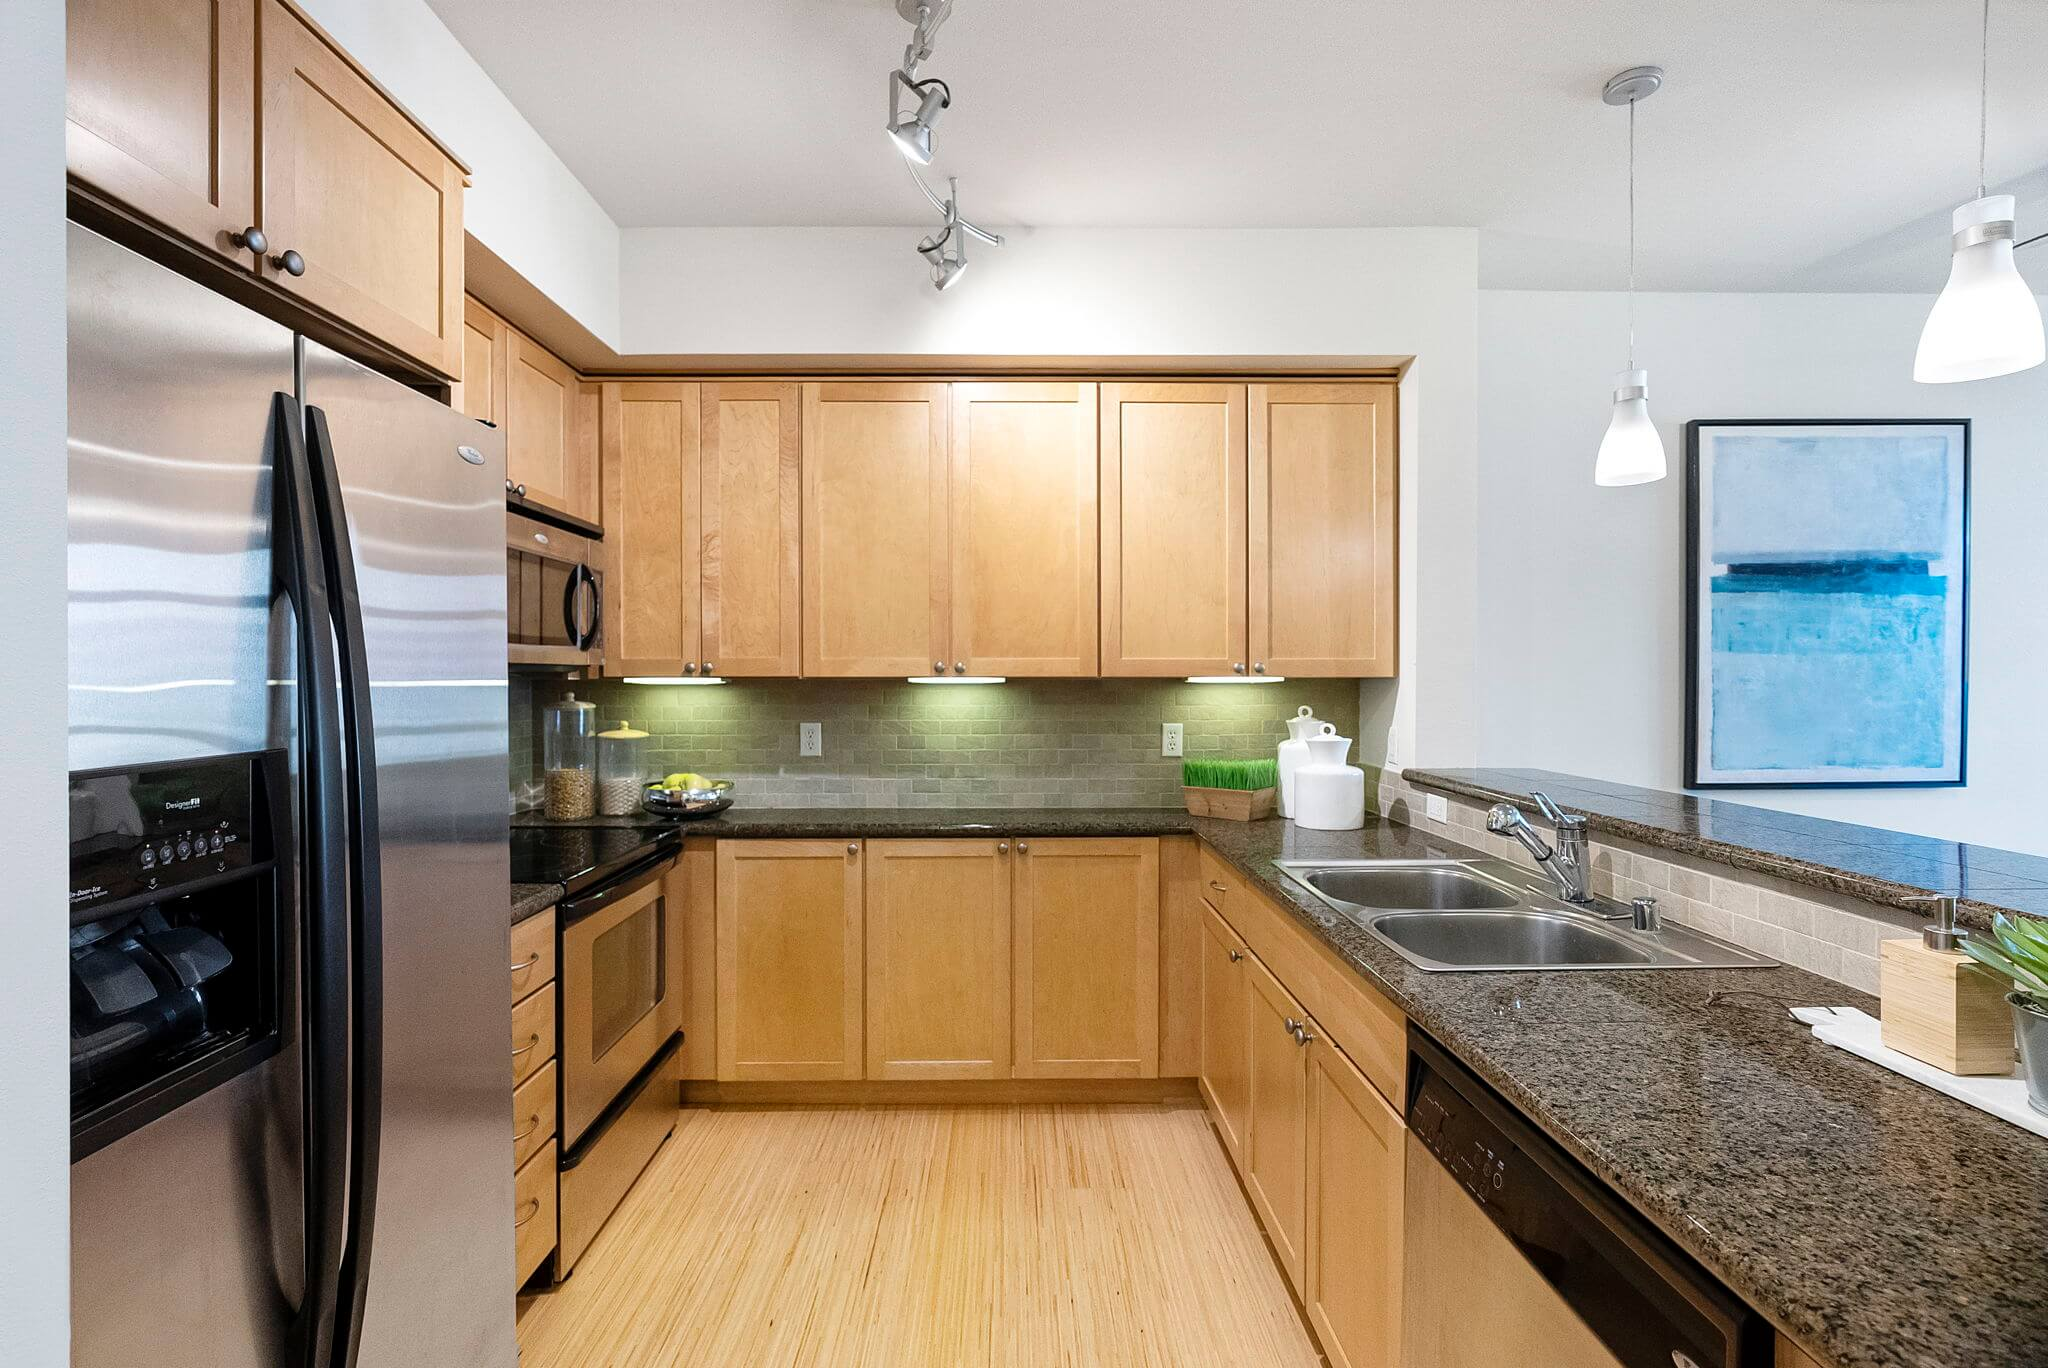 Kitchen features granite counters, stainless appliances, under cabinet lighting and bamboo floors